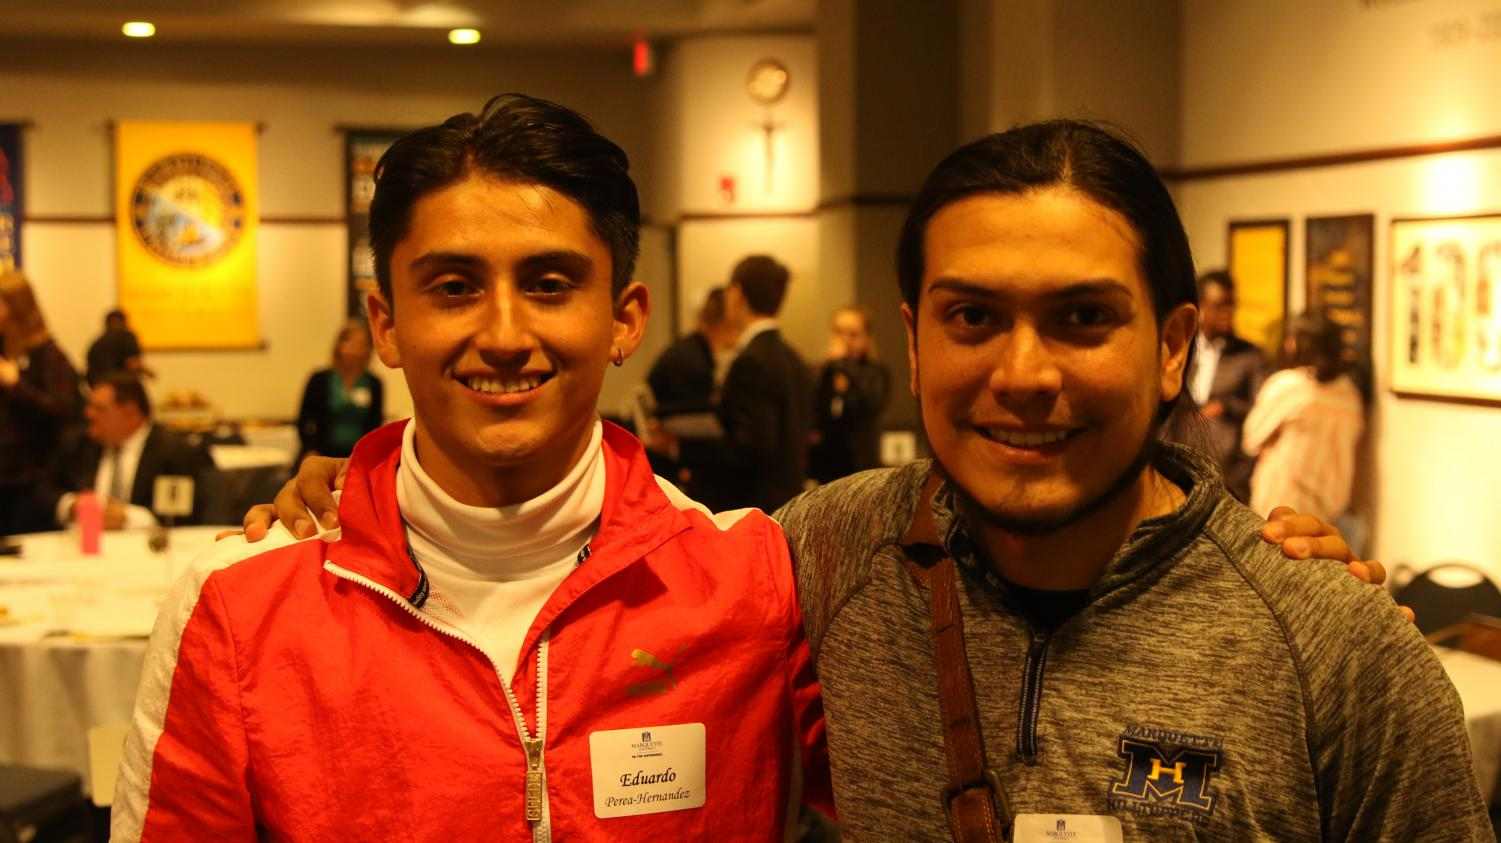 Eduardo Perea-Hernandez (left) and Alan Chavoya moderated and led discussions at the event.